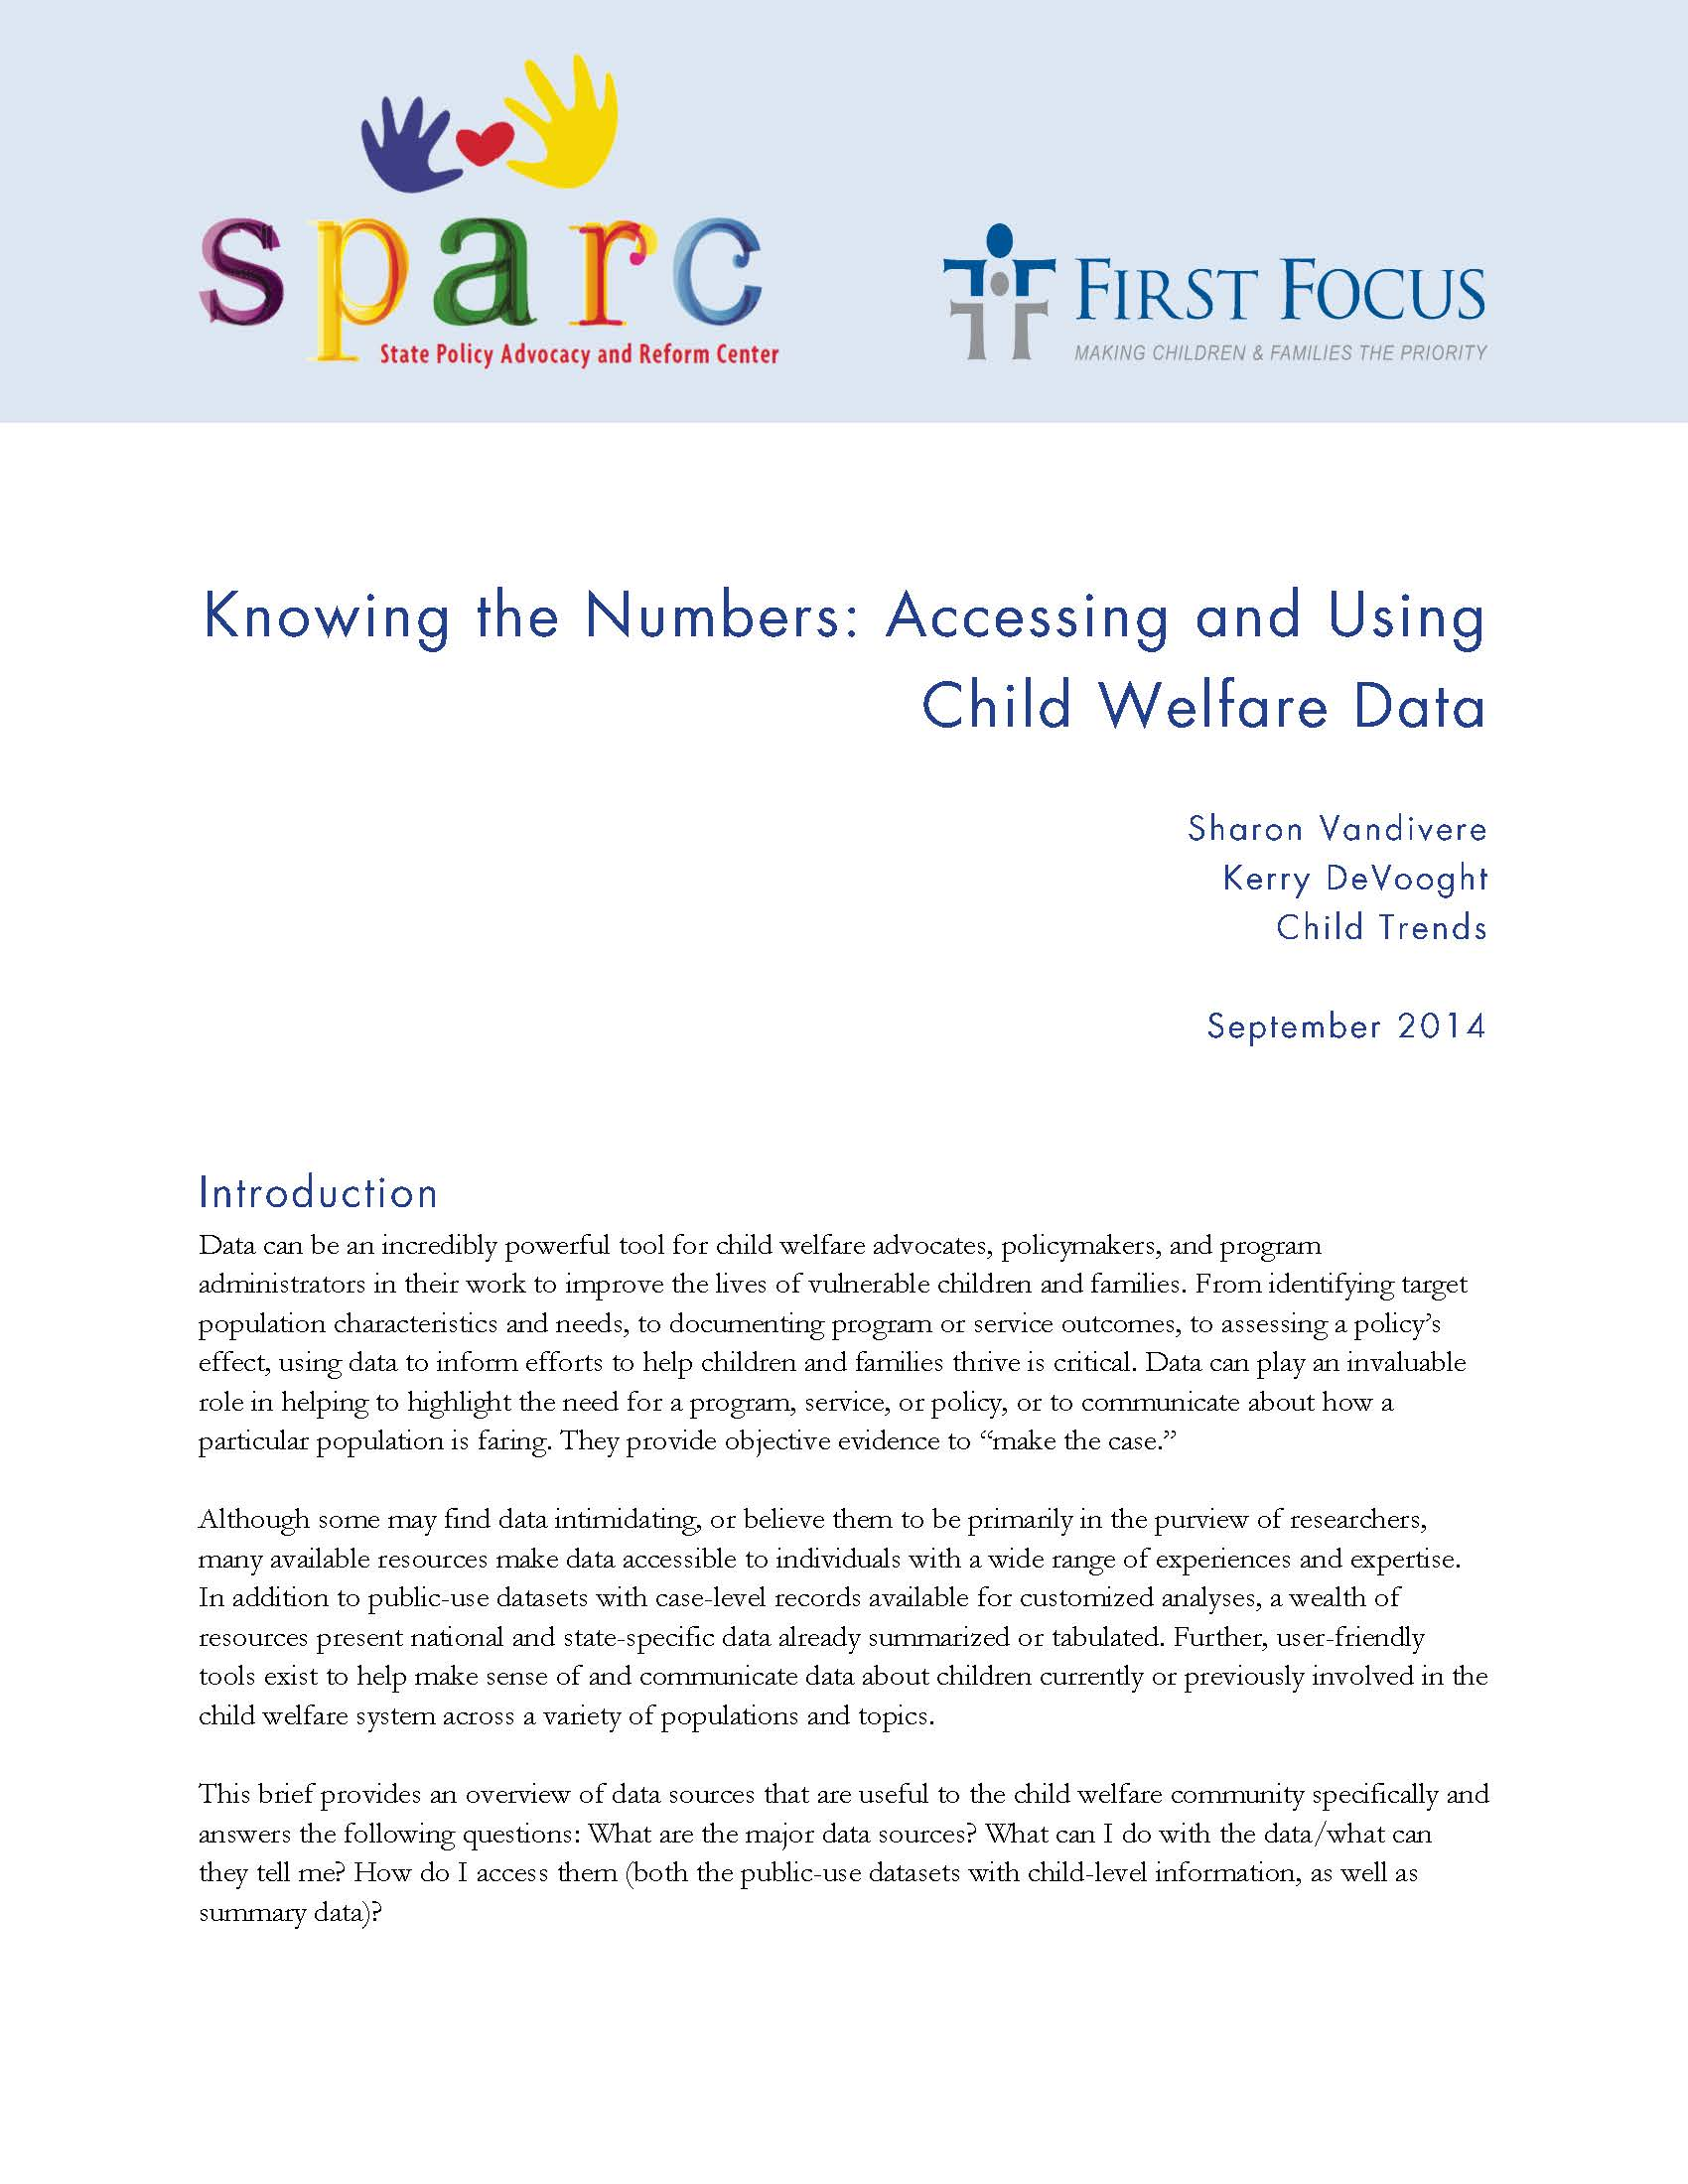 Knowing the Numbers: Accessing and Using Child Welfare Data